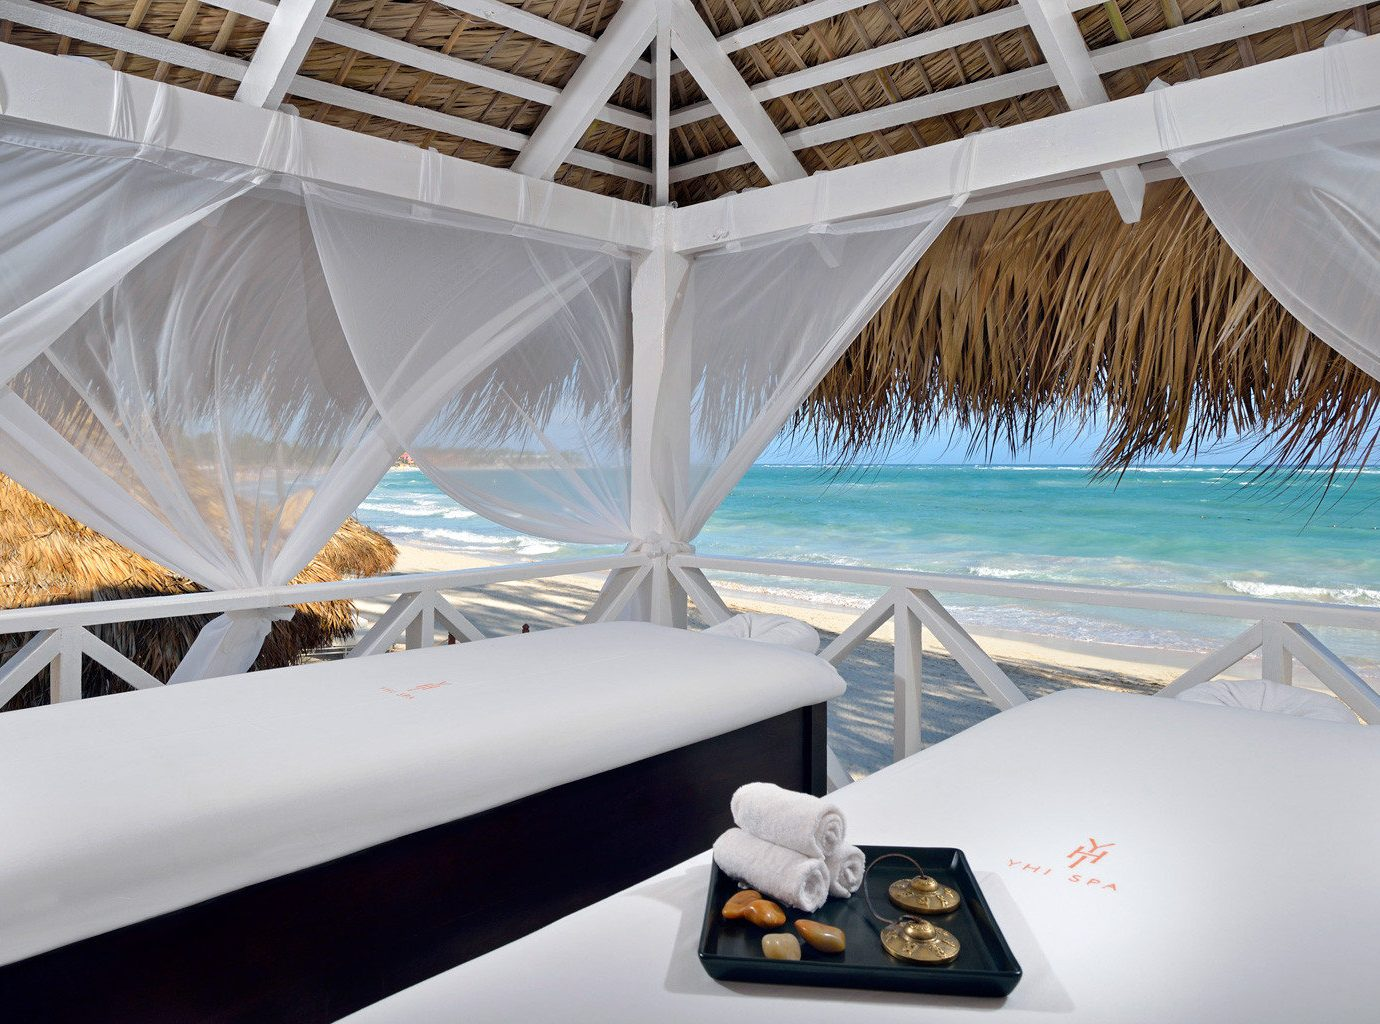 All-inclusive Beach Beachfront Family Luxury Resort Romantic Spa Waterfront Wellness Boat white vehicle yacht passenger ship watercraft